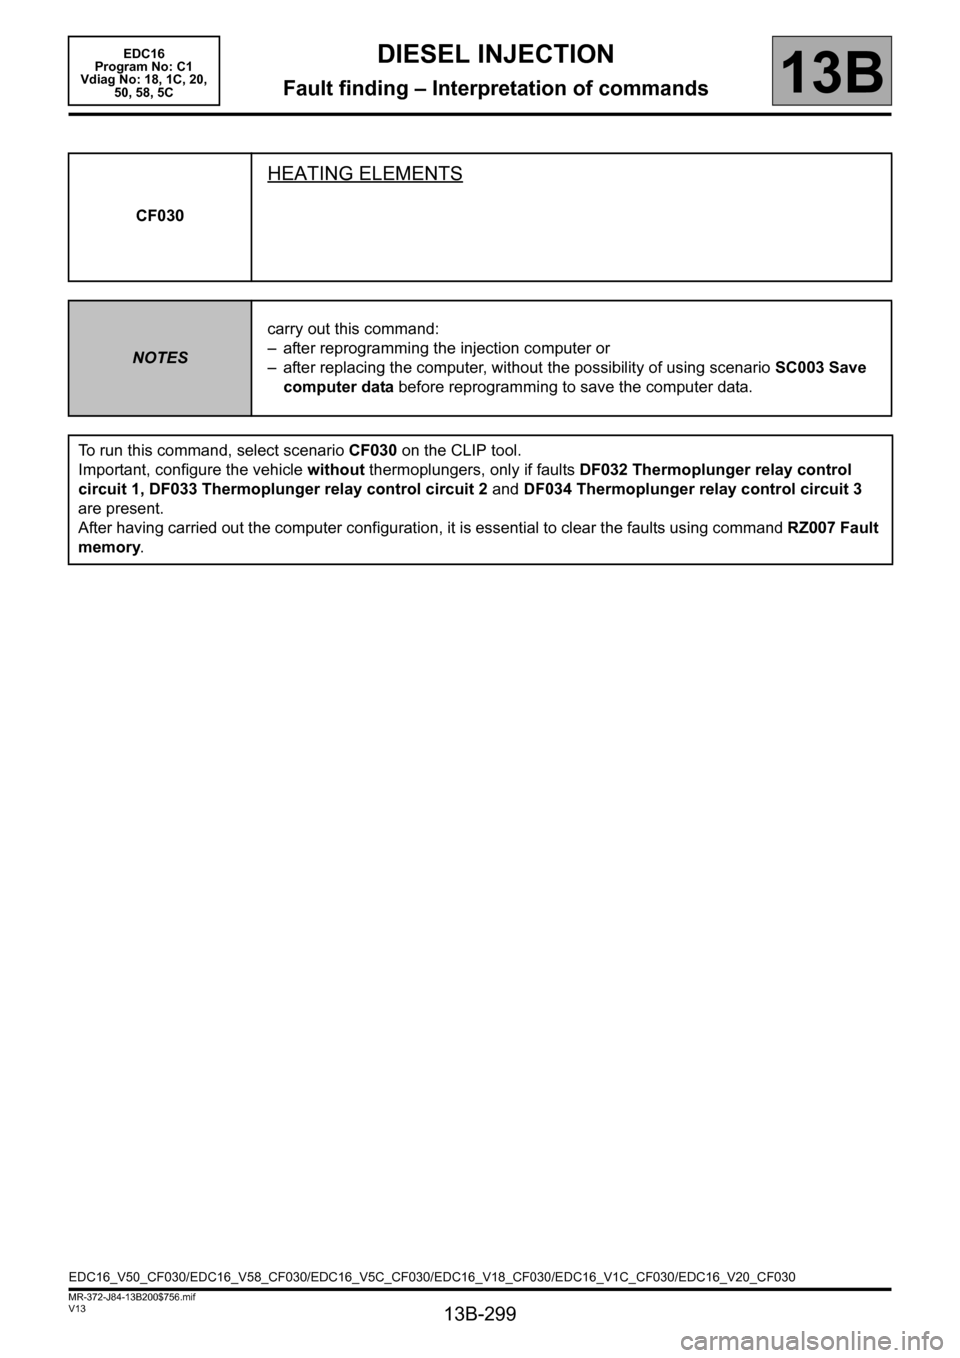 RENAULT SCENIC 2011 J95 / 3.G Engine And Peripherals EDC16 Workshop Manual, Page 299